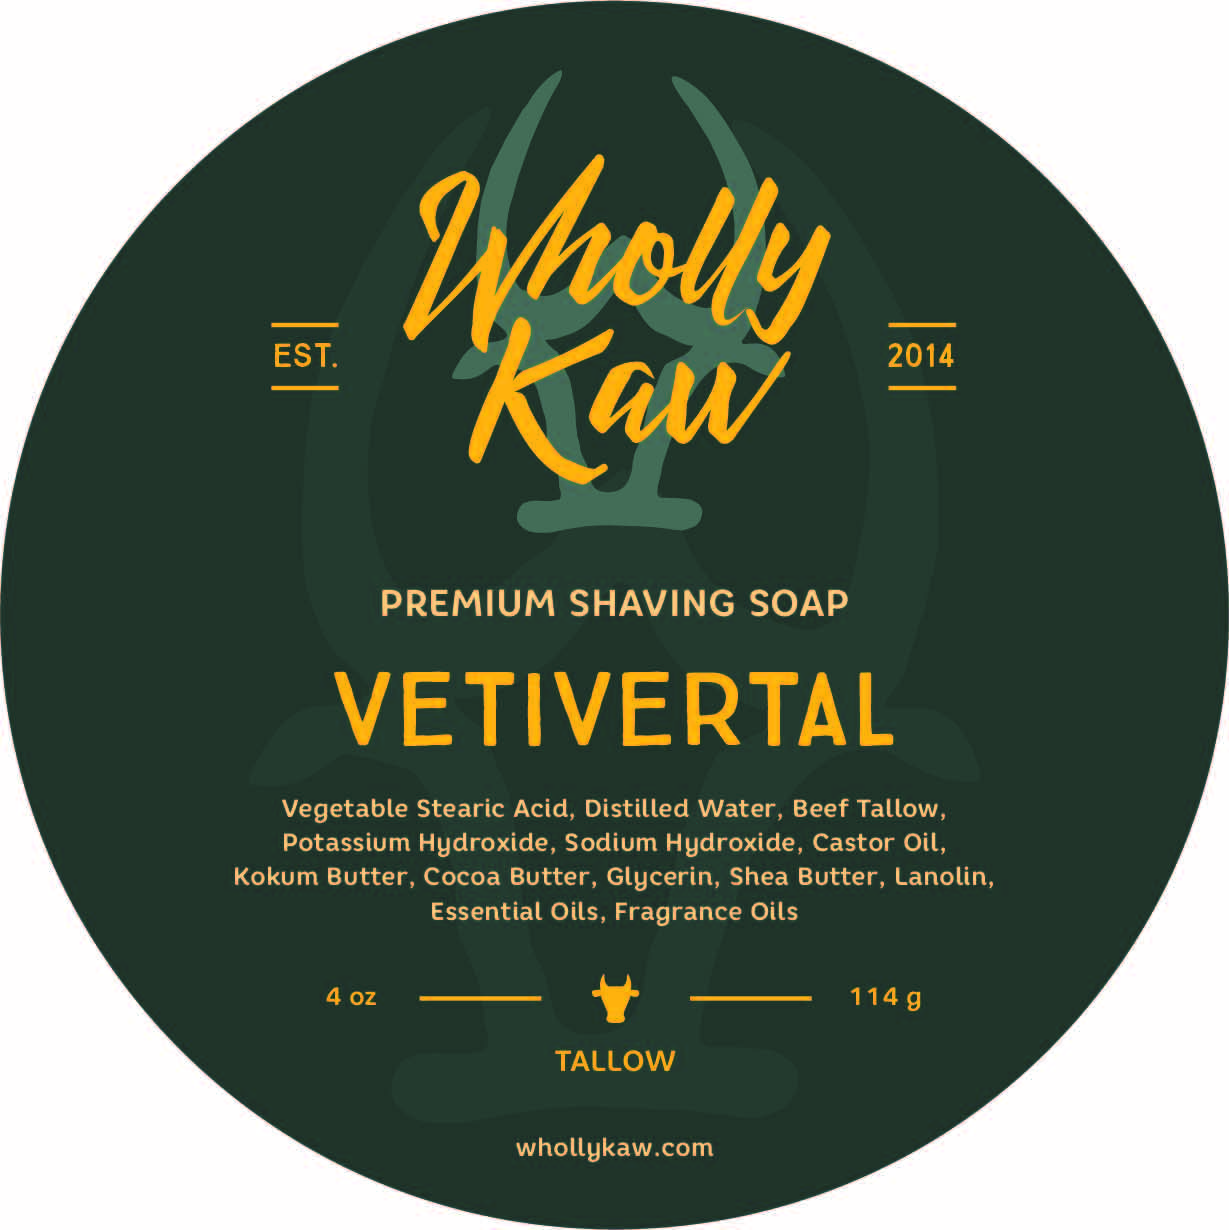 Wholly Kaw - Vetivertal - Soap image